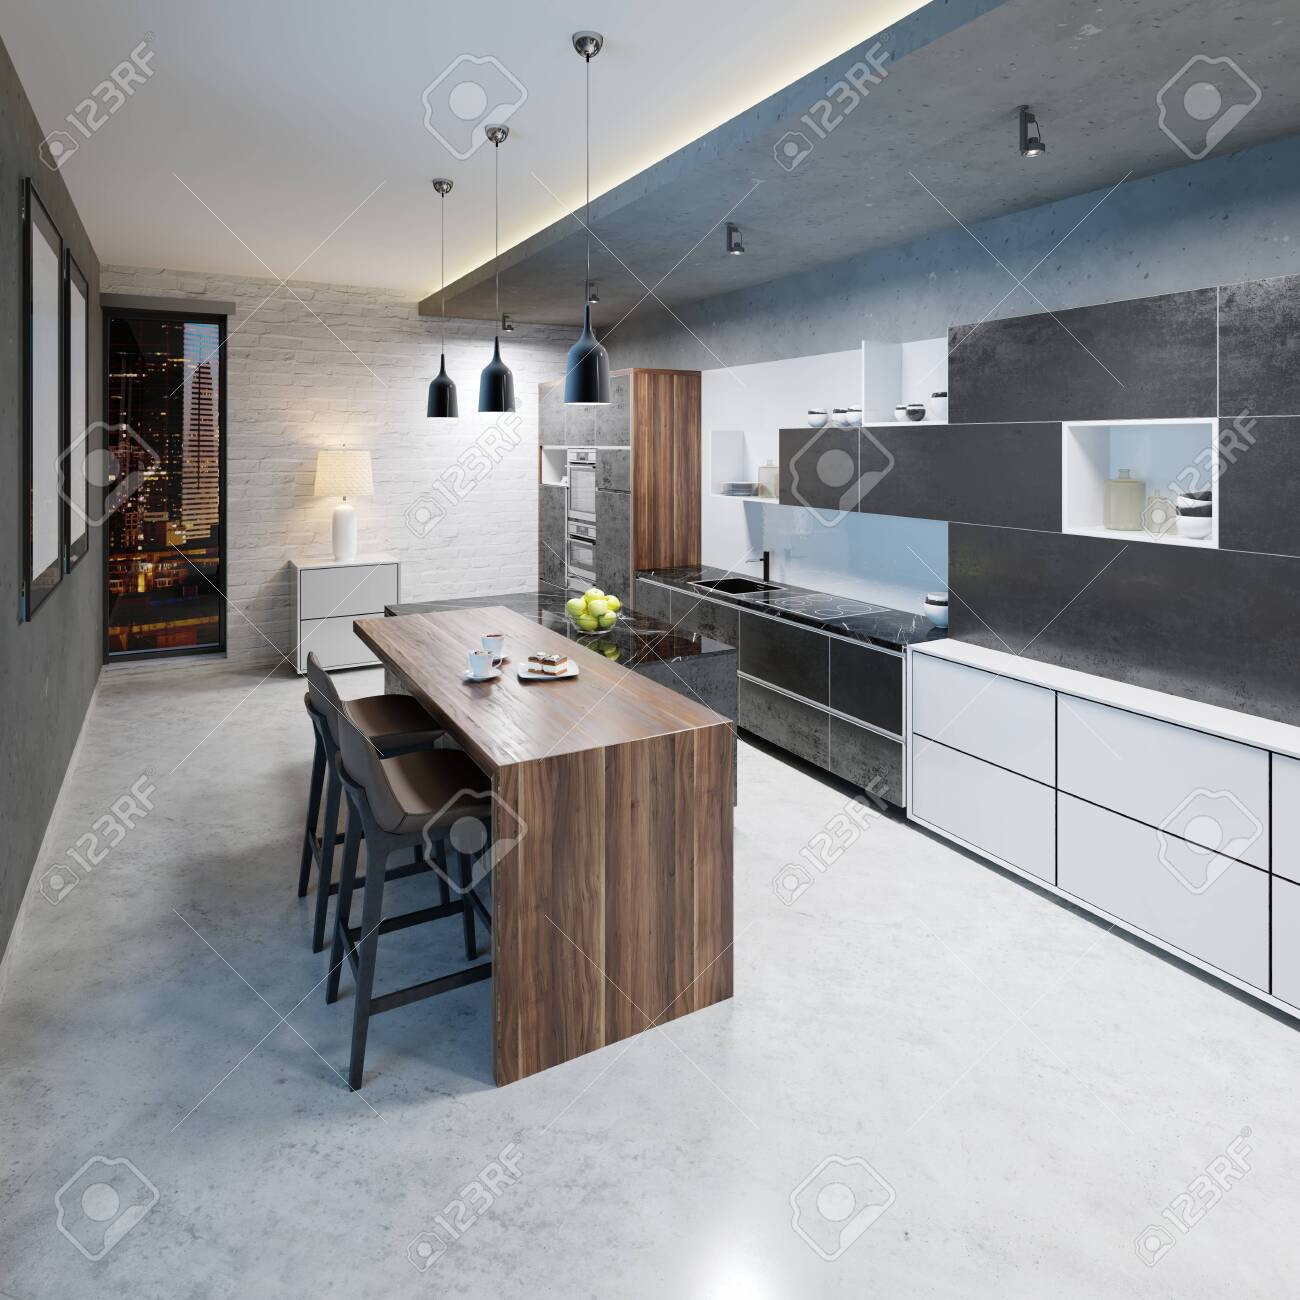 modern kitchen design with a long center island and bar table..